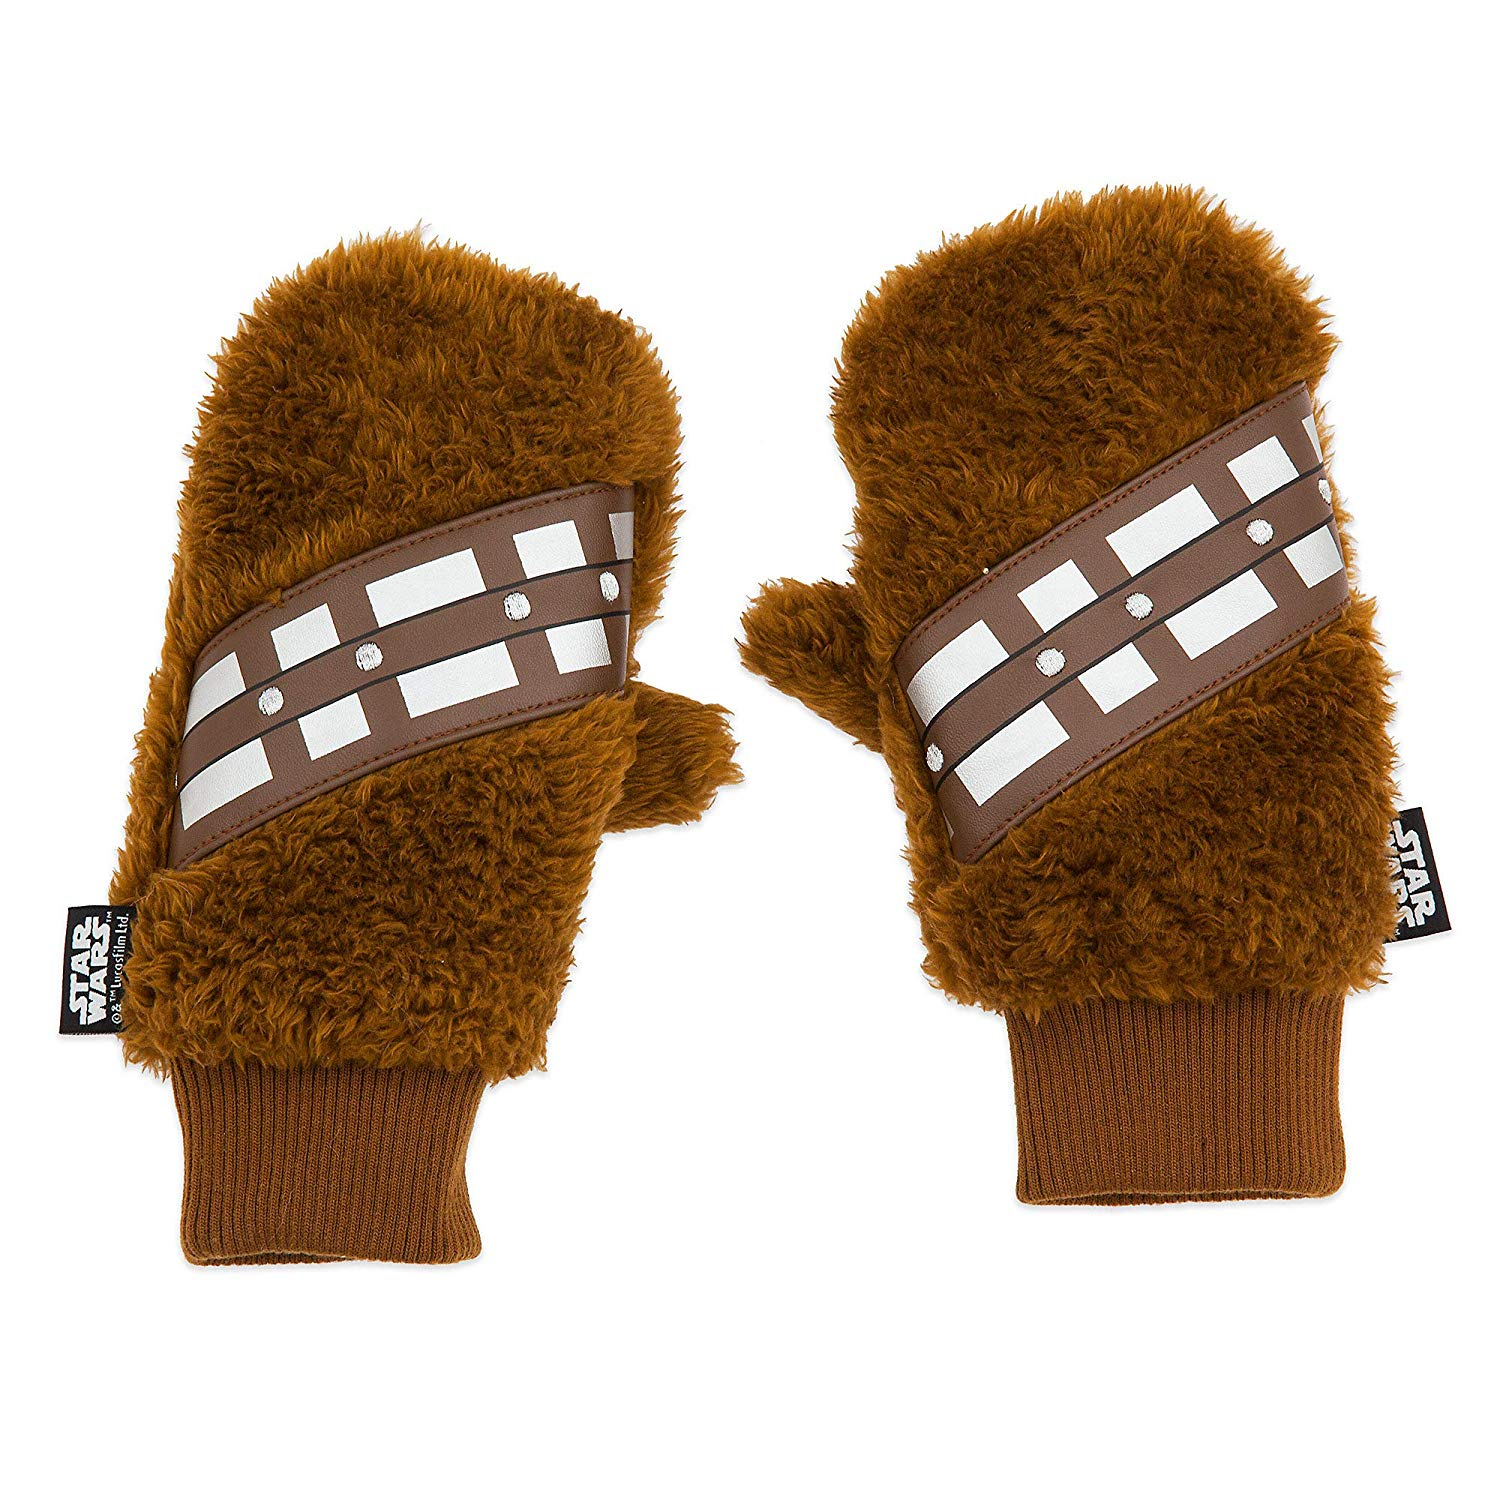 Star Wars Chewbacca Mittens for Kids- best gifts for kids